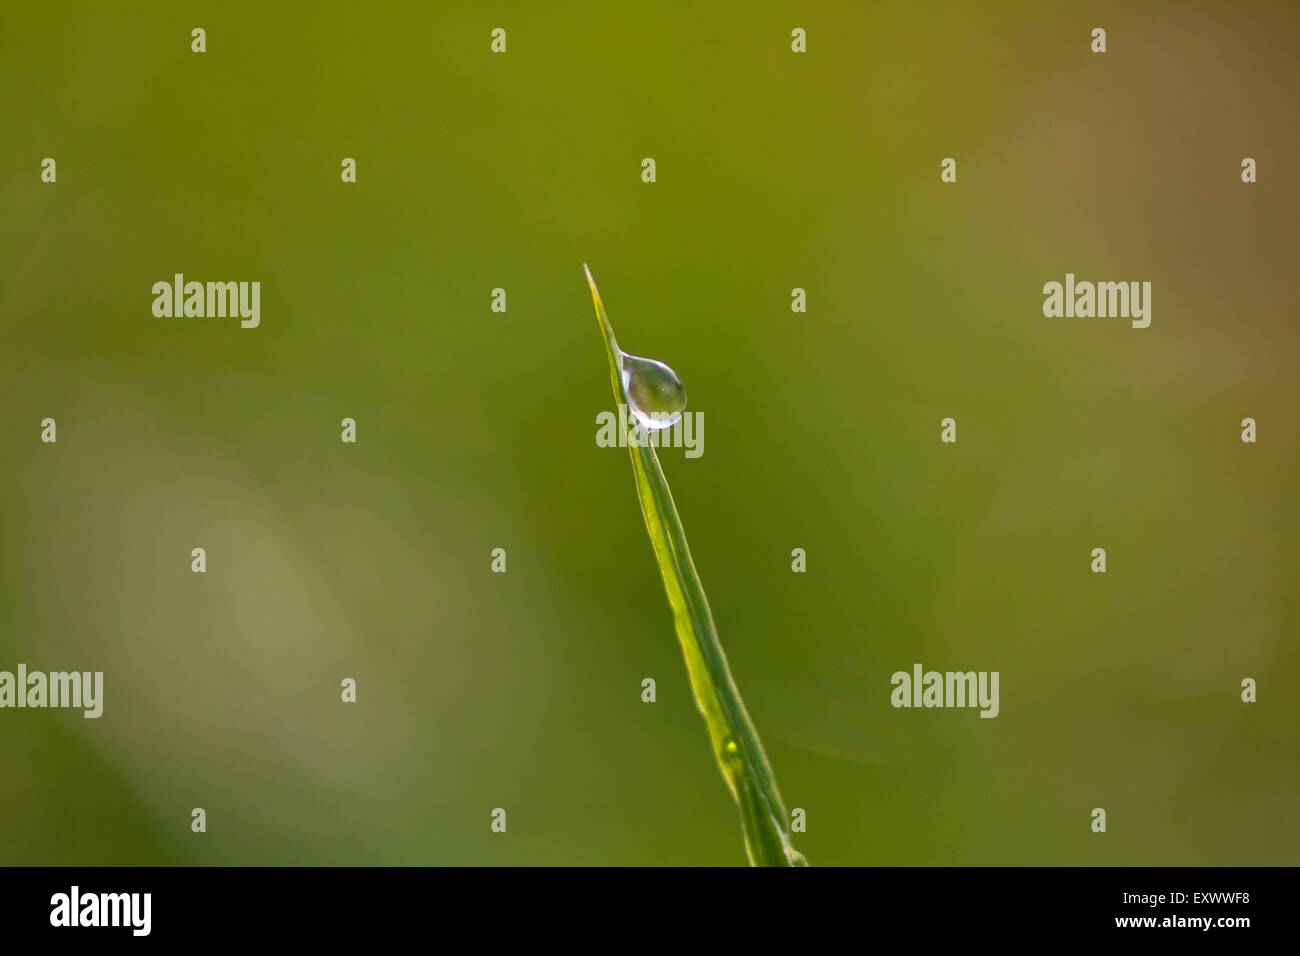 Blade of grass with dew drop - Stock Image